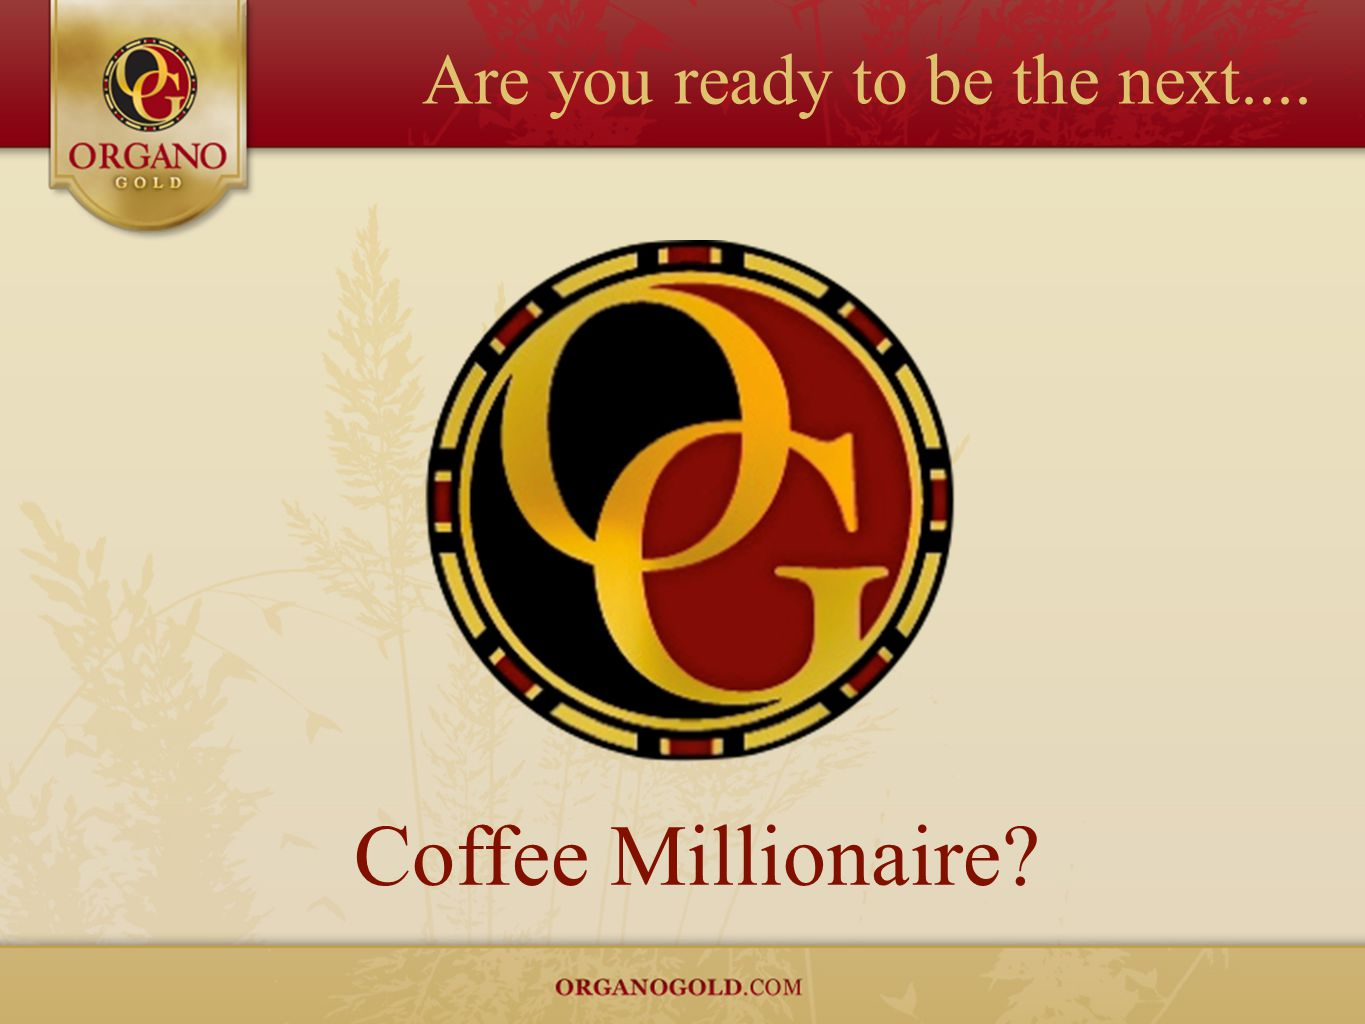 Are you ready to be the next.... Coffee Millionaire?